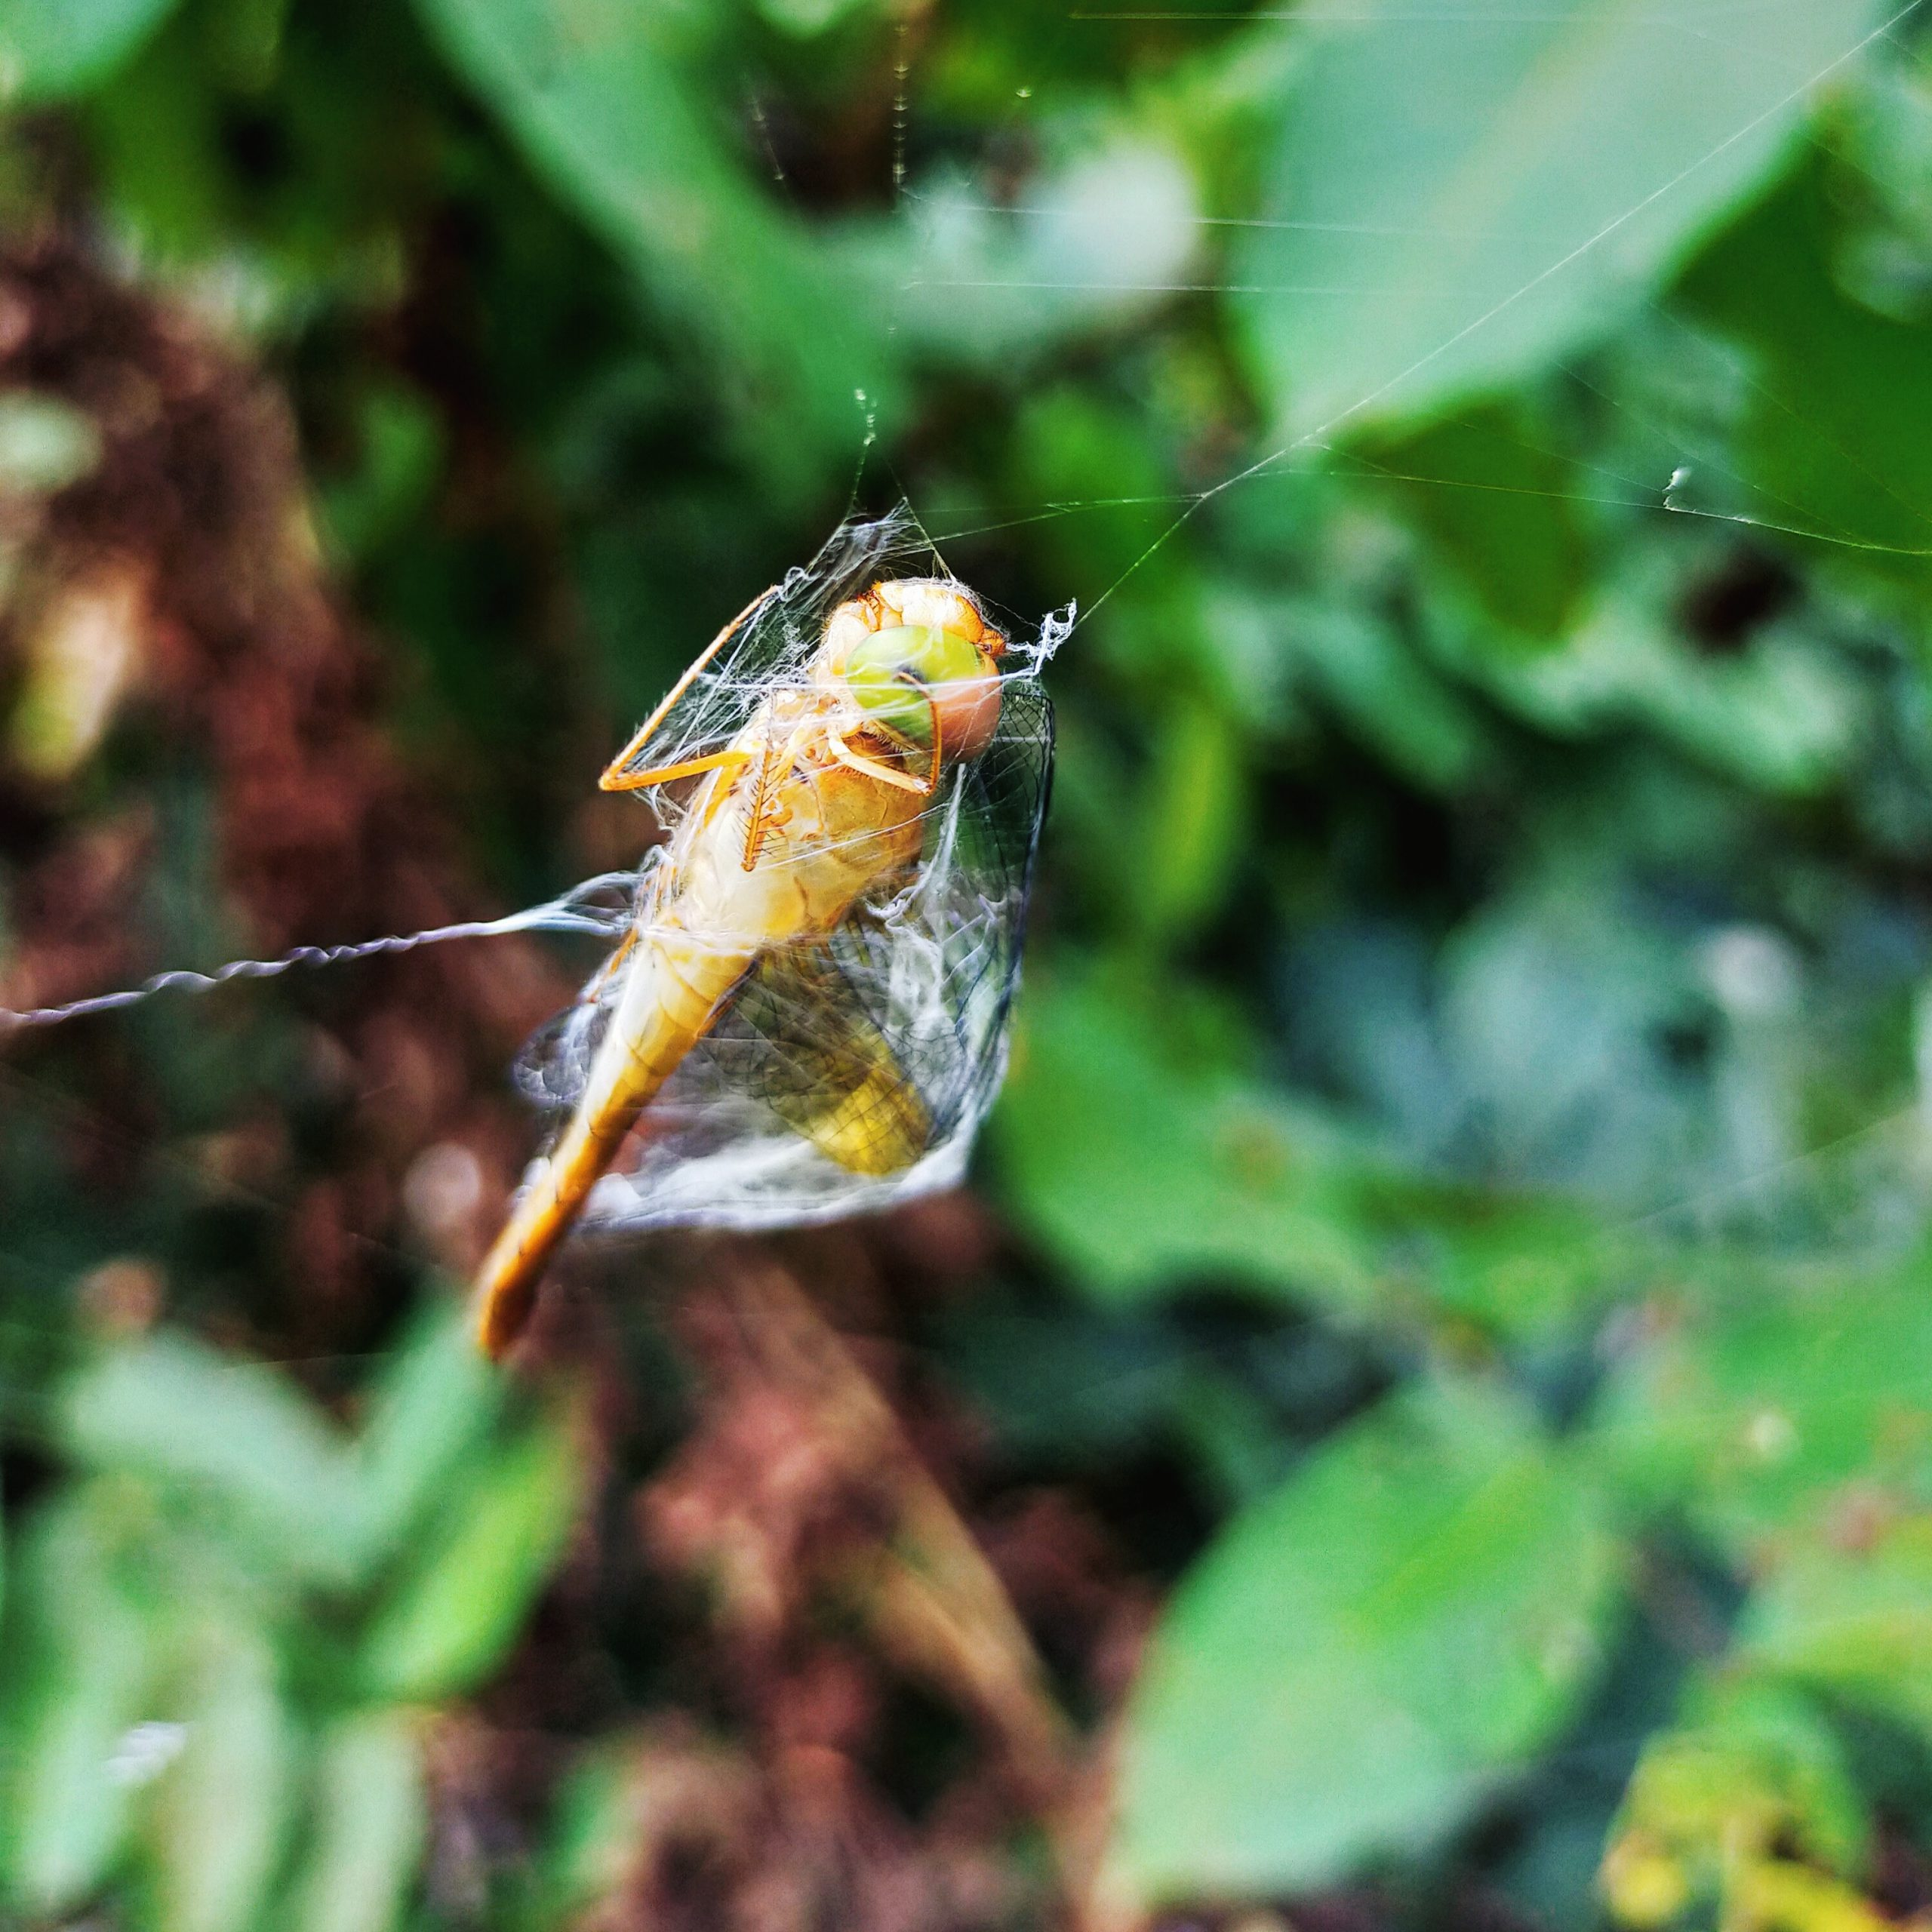 A dragonfly trapped in a spiderweb